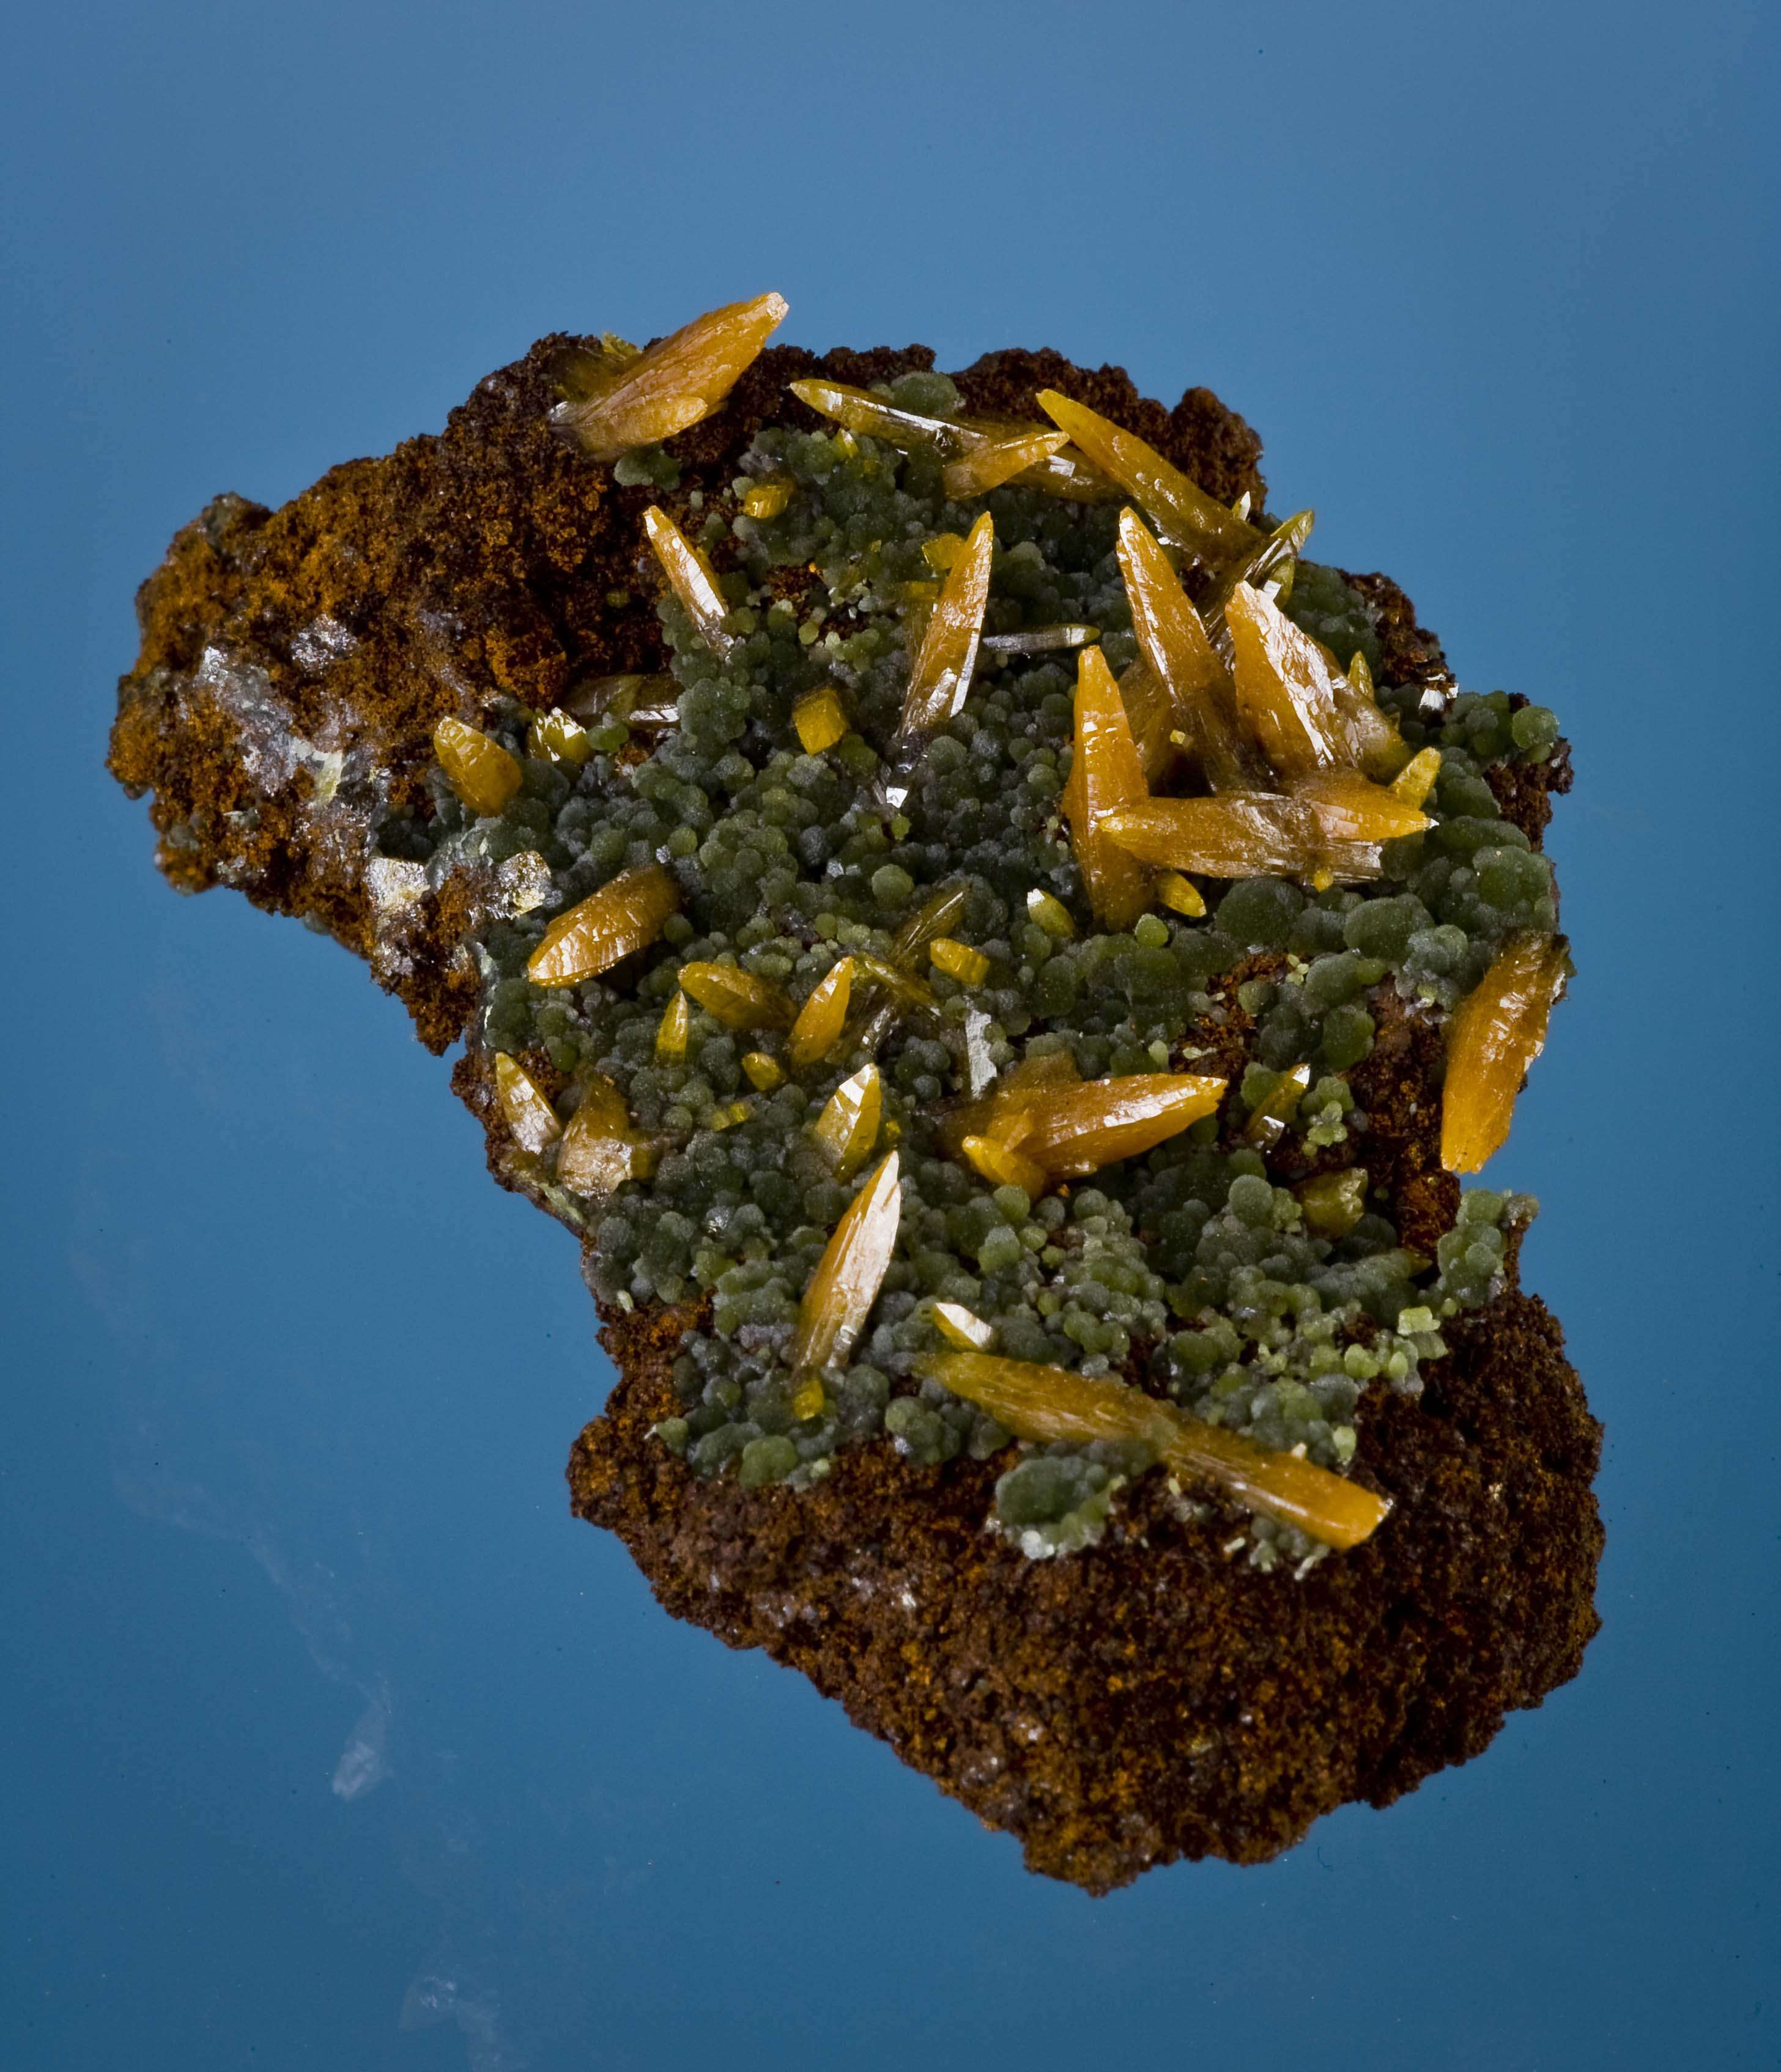 On silky green mimetite lays cluster superbly crystallized slender